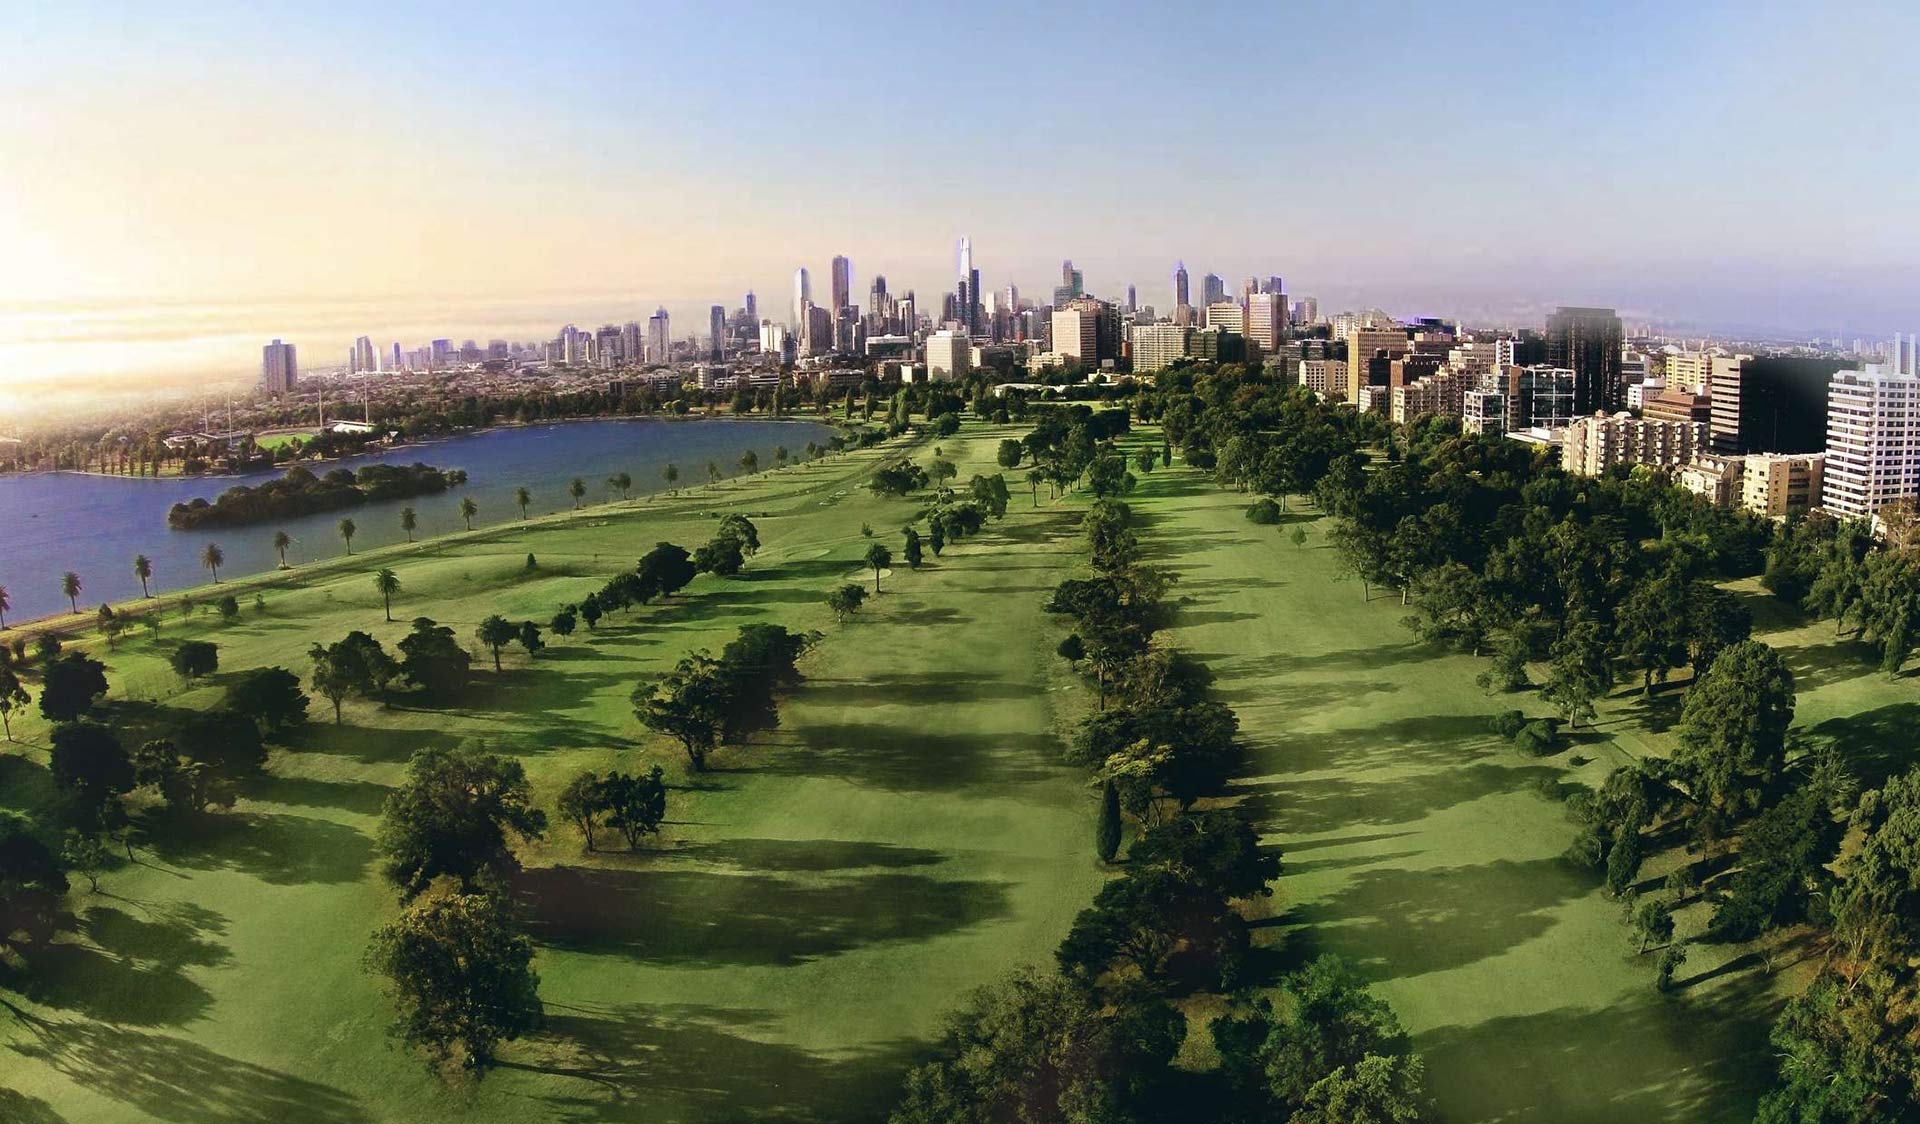 Albert Park Golf Course with views of Melbourne's CBD skyline in the background.